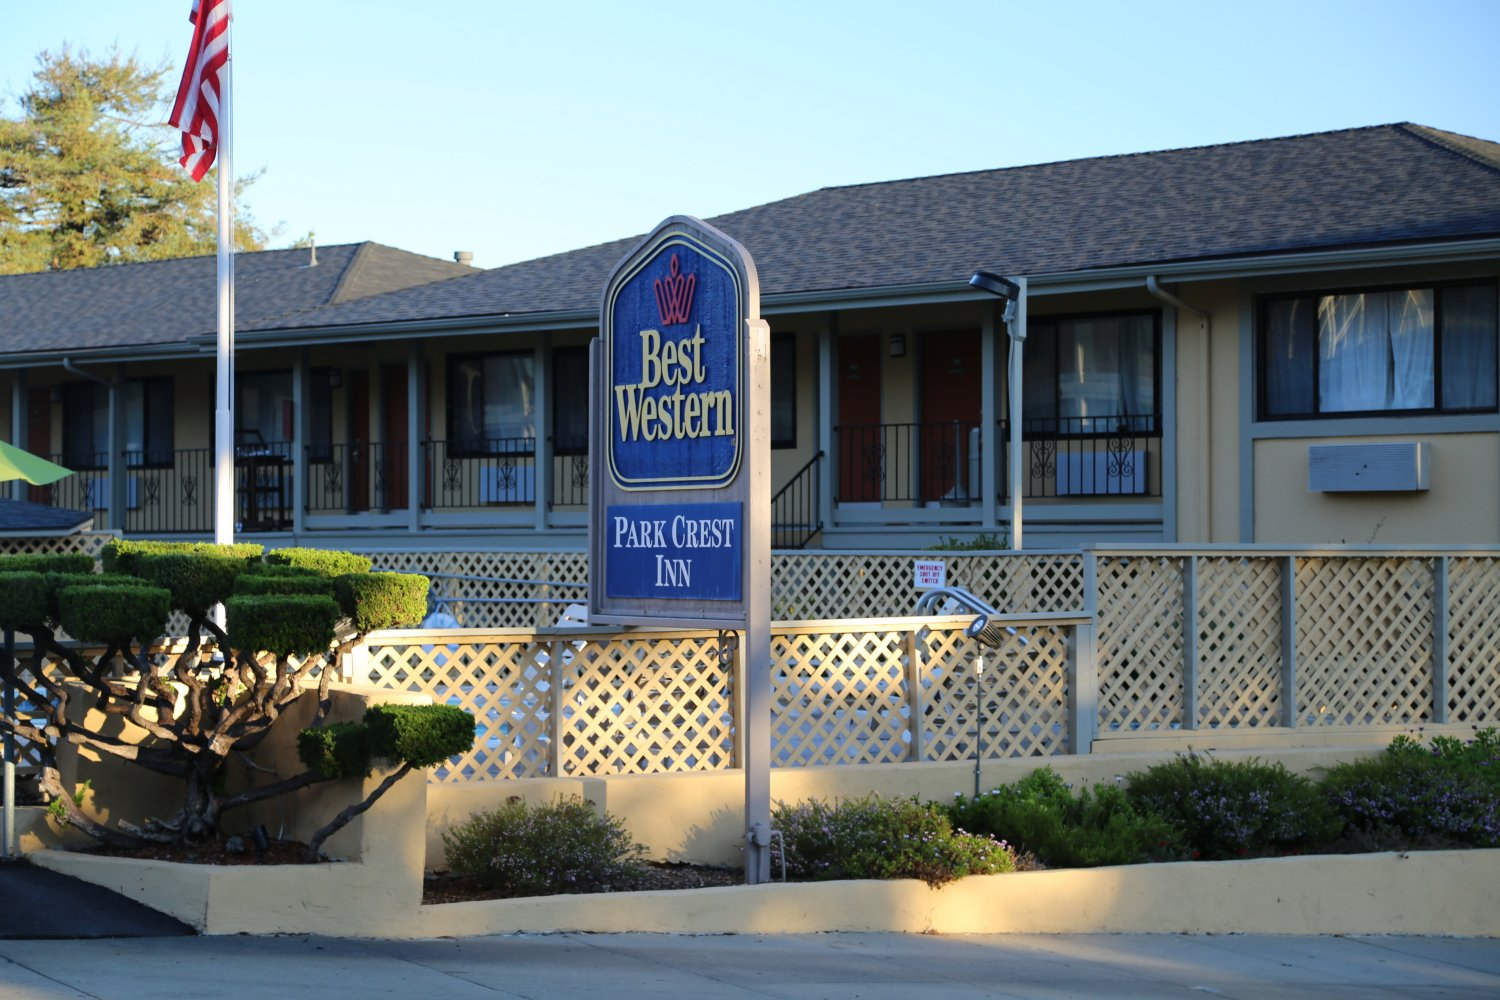 Best Western Park Crest Motel Is Located At 1100 Munras Ave They Are Rated 3 Stars And Their Prices Range From 79 To 279 Have 53 Rooms 2 Stories